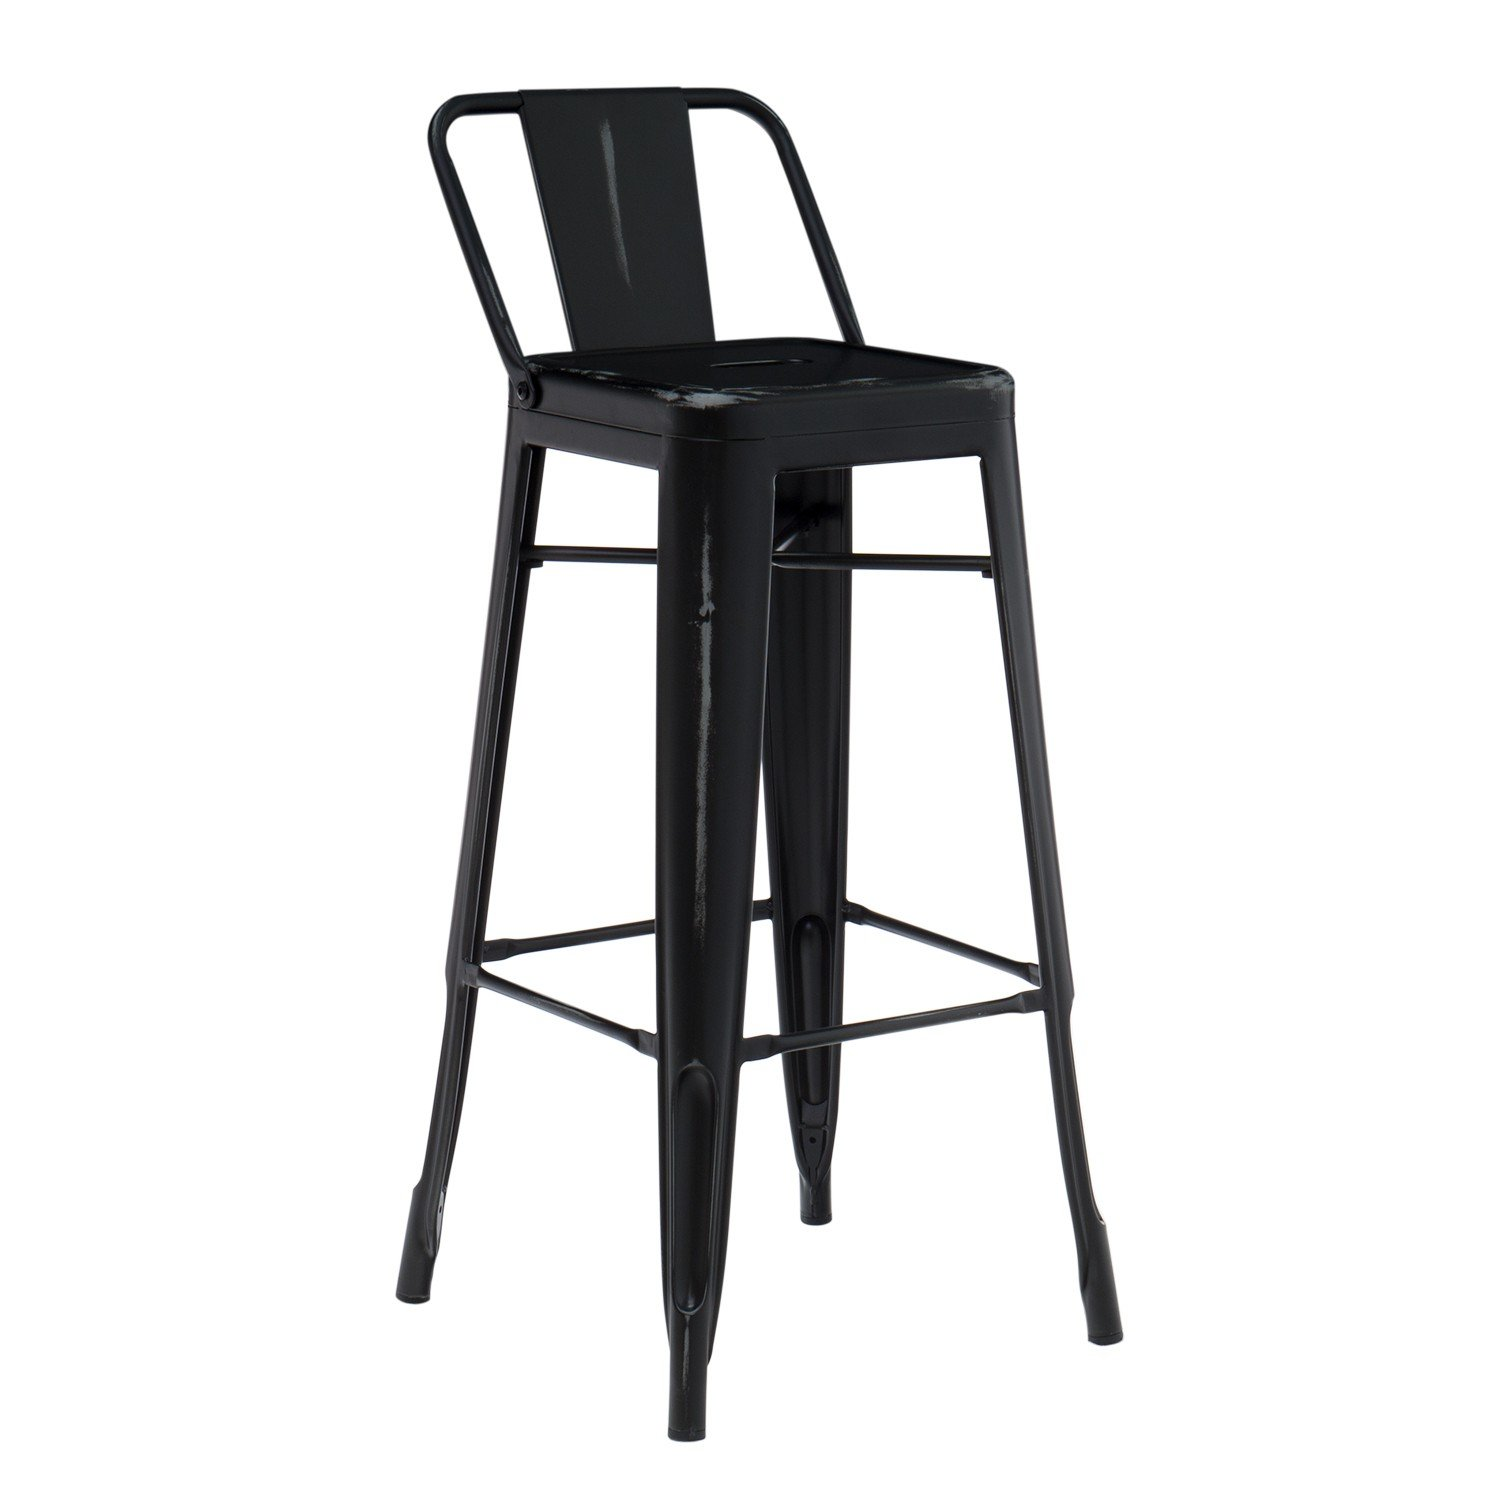 High Stool with LIX Vintage Steel Backrest, gallery image 1